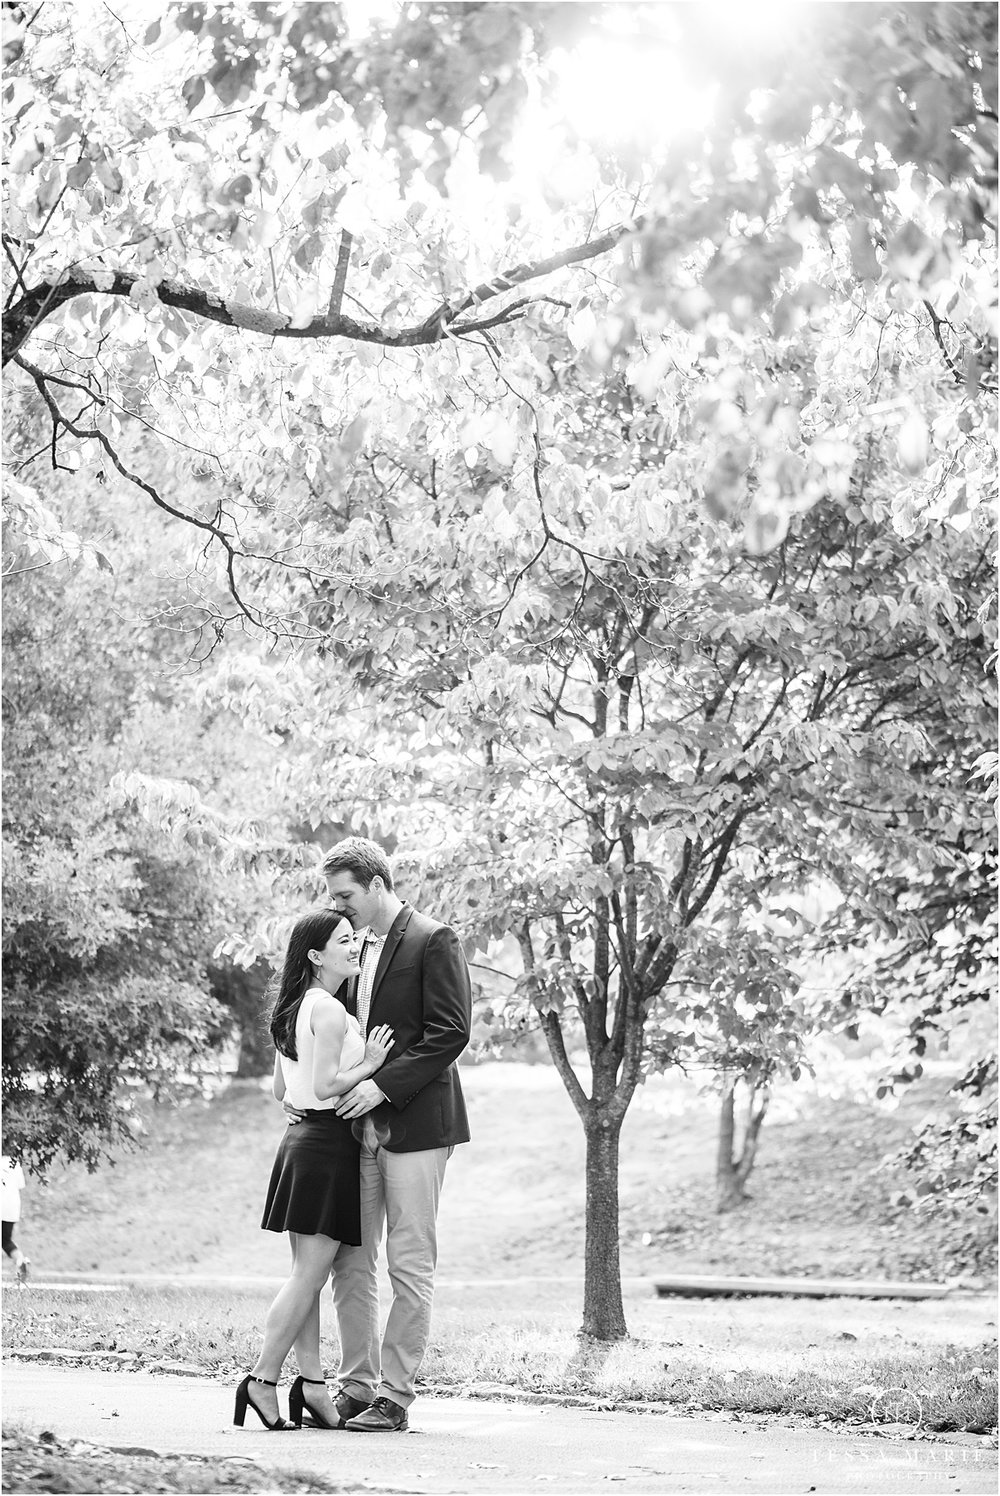 Tessa_marie_photography_wedding_photographer_engagement_pictures_piedmont_park_0049.jpg